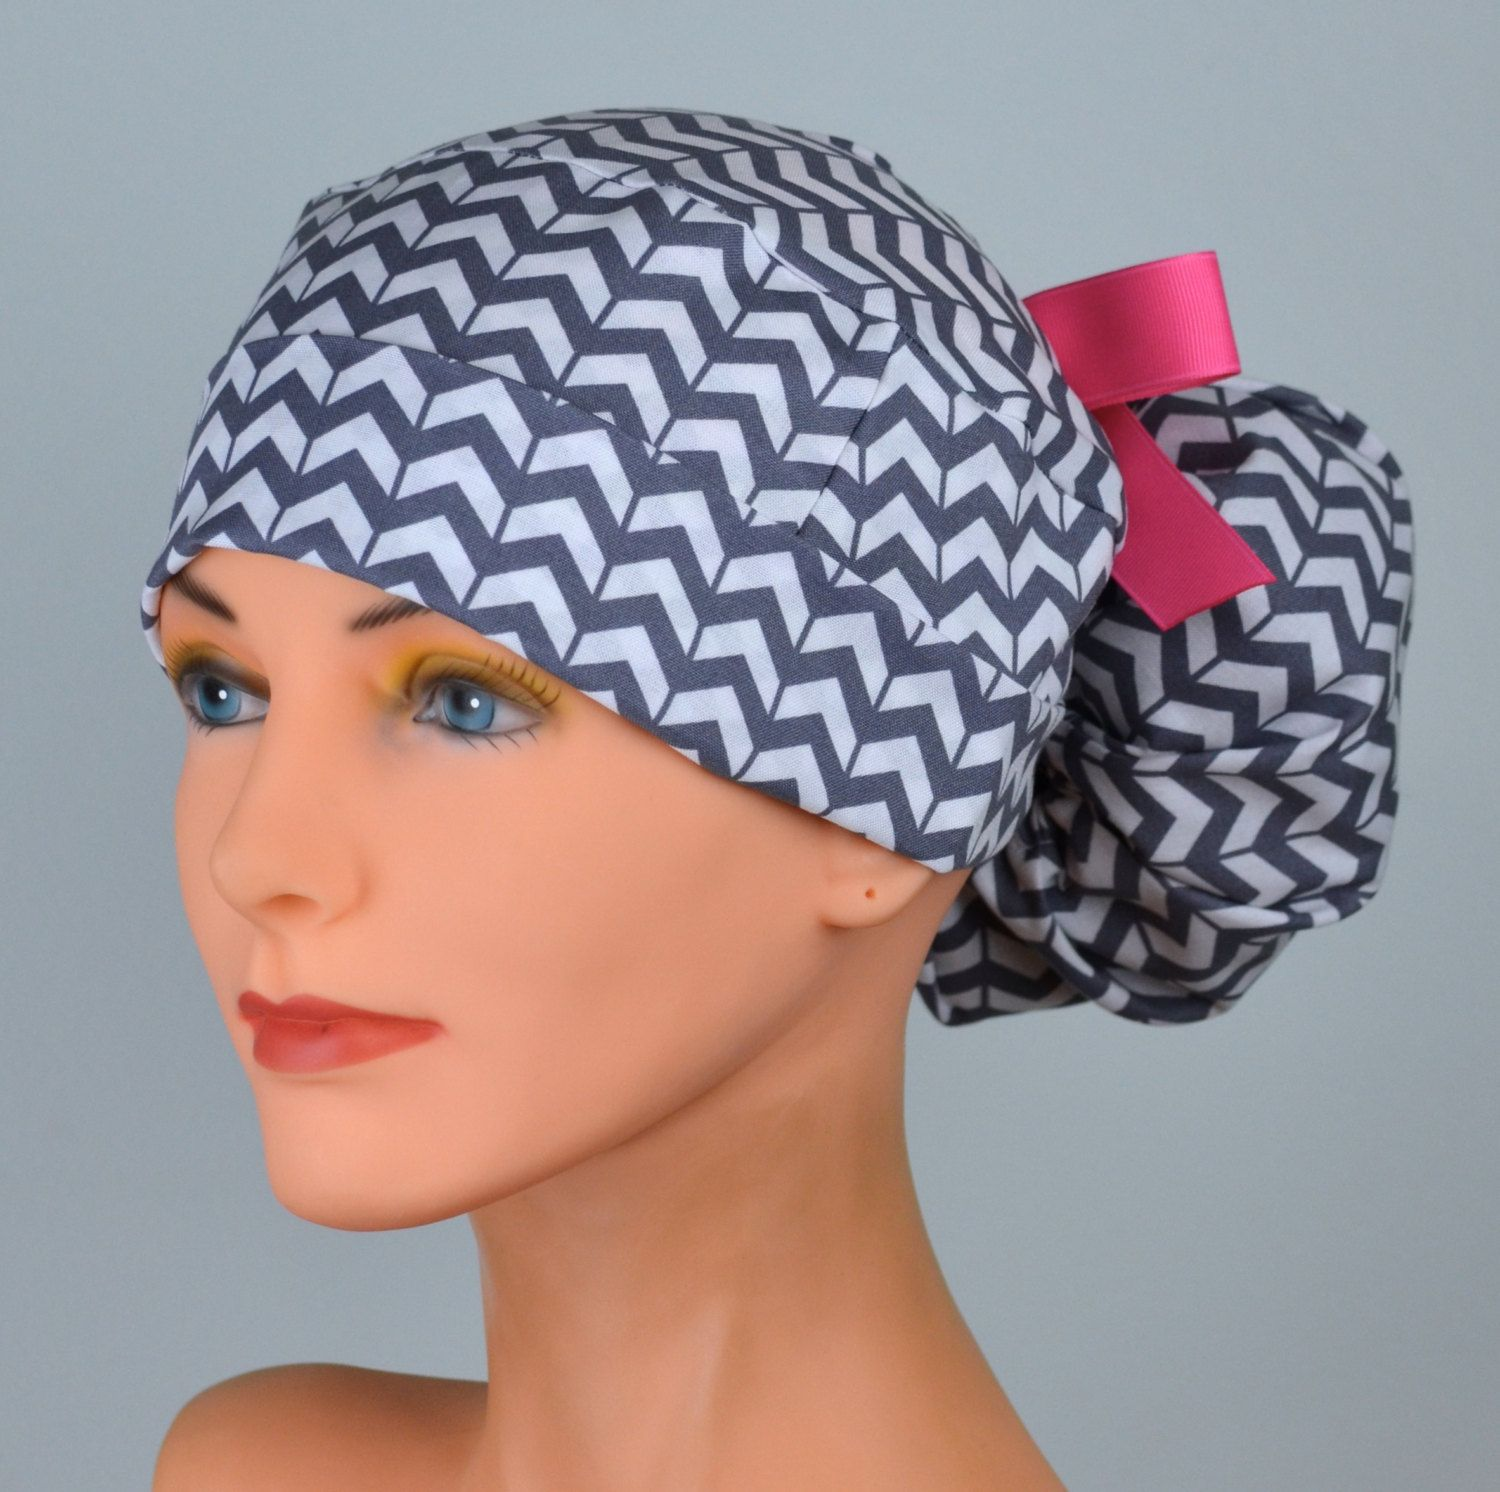 Image Result For Ponytail Scrub Hat Pattern Free Printable Scrub